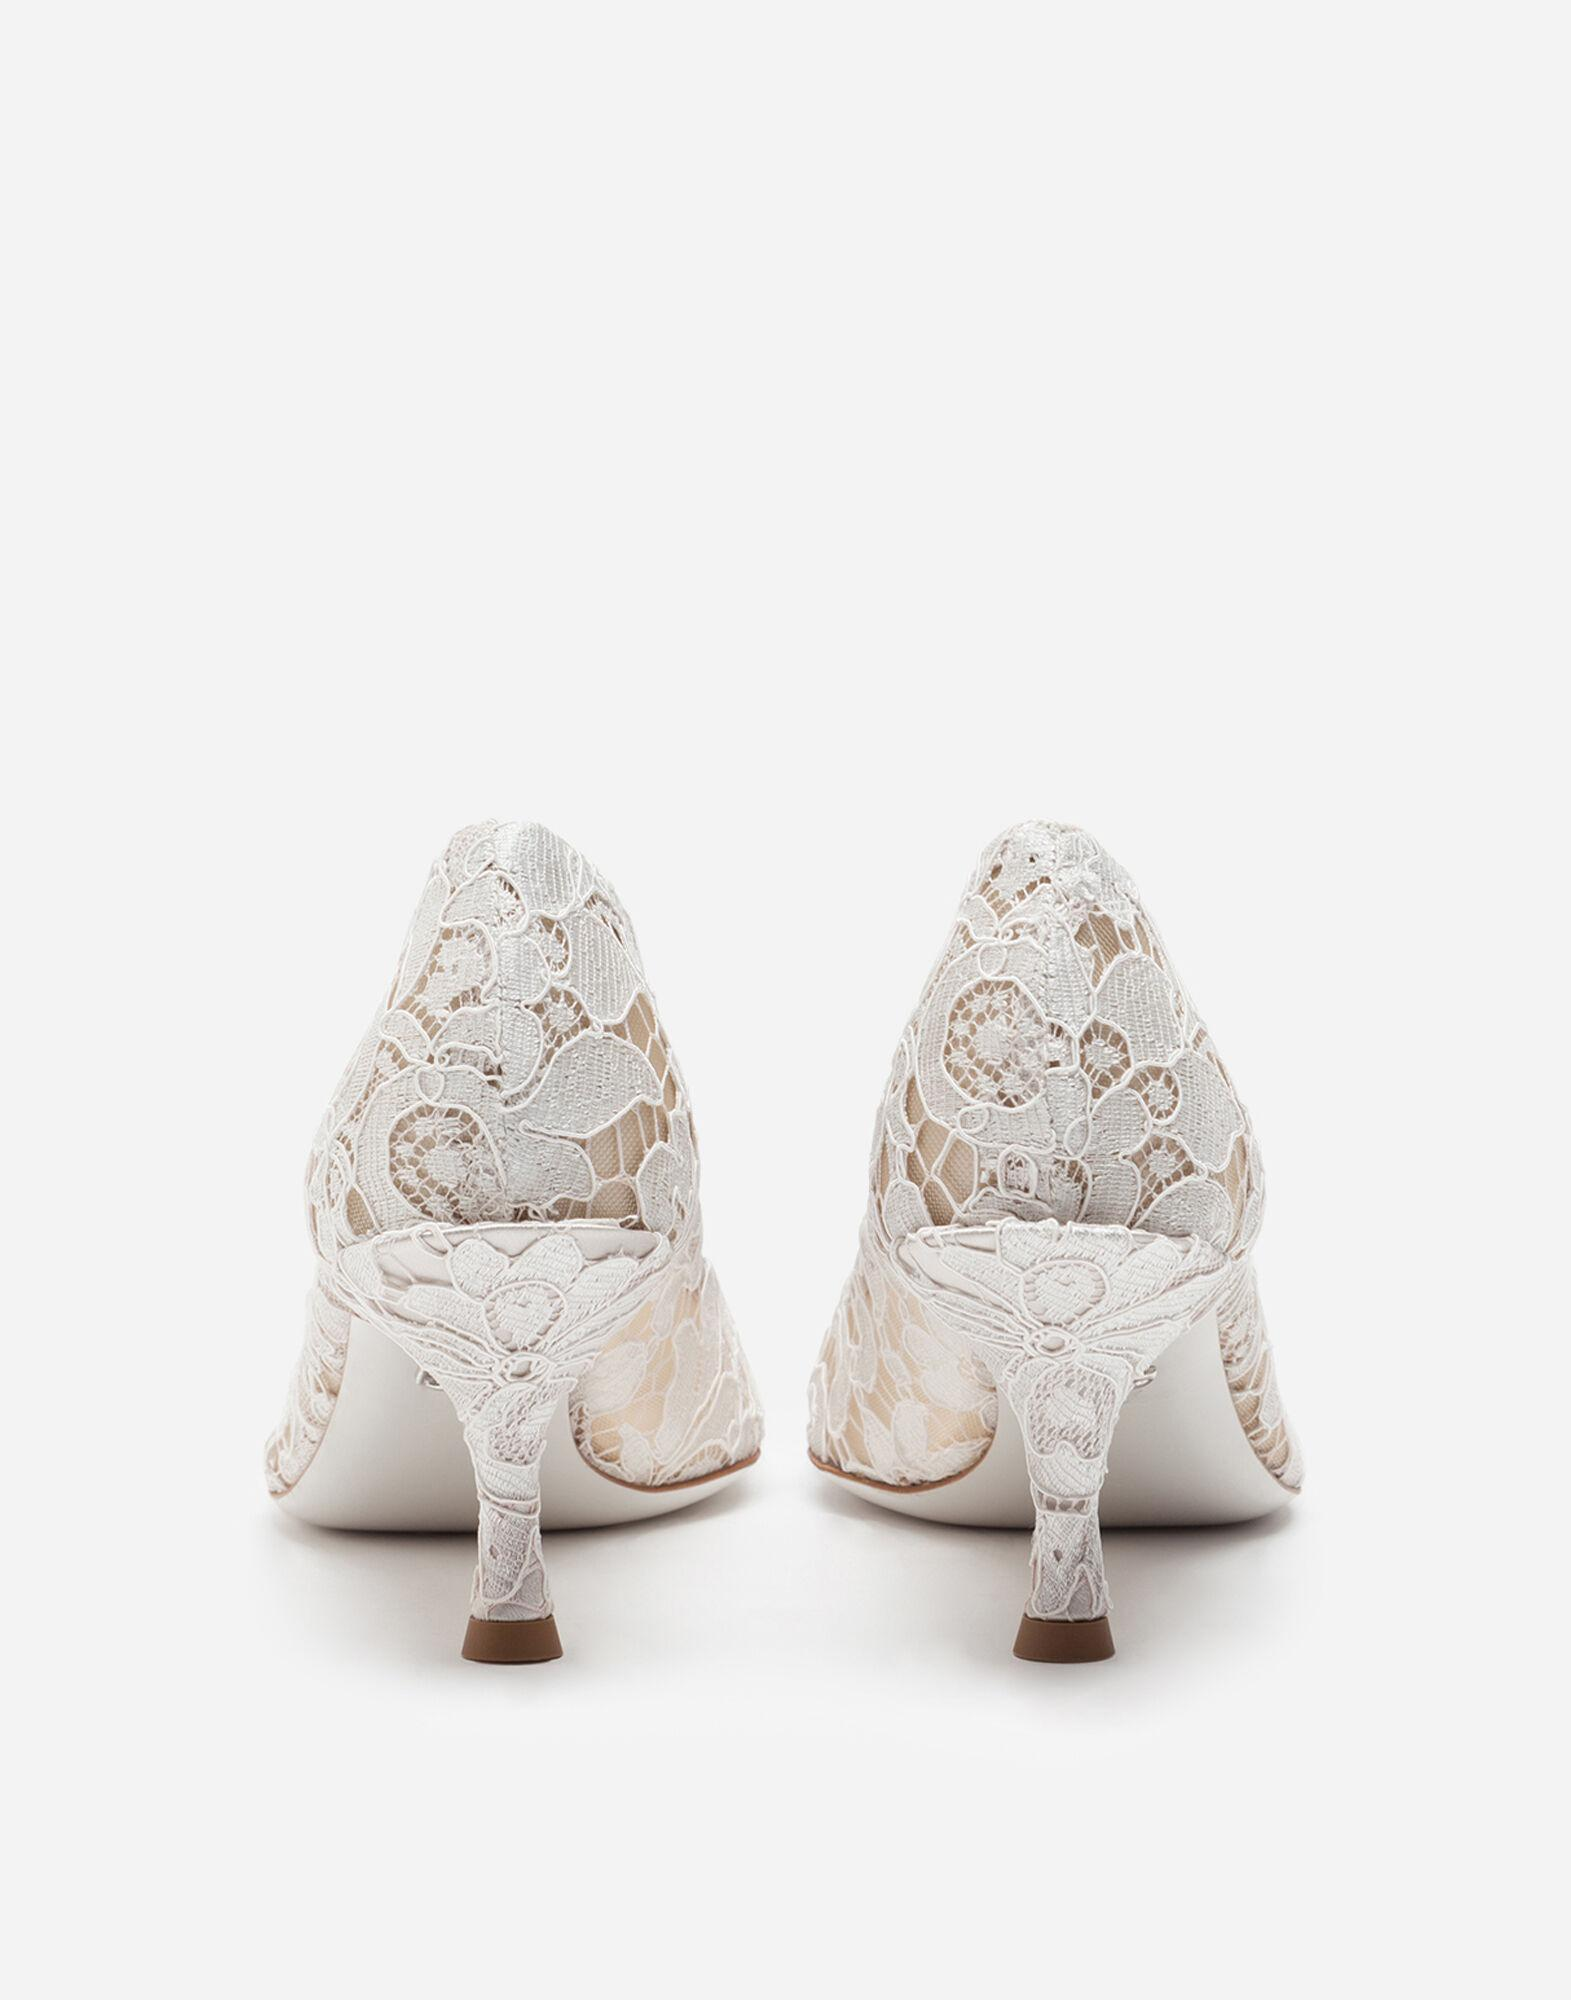 Taormina lace pumps with DG Amore logo 2